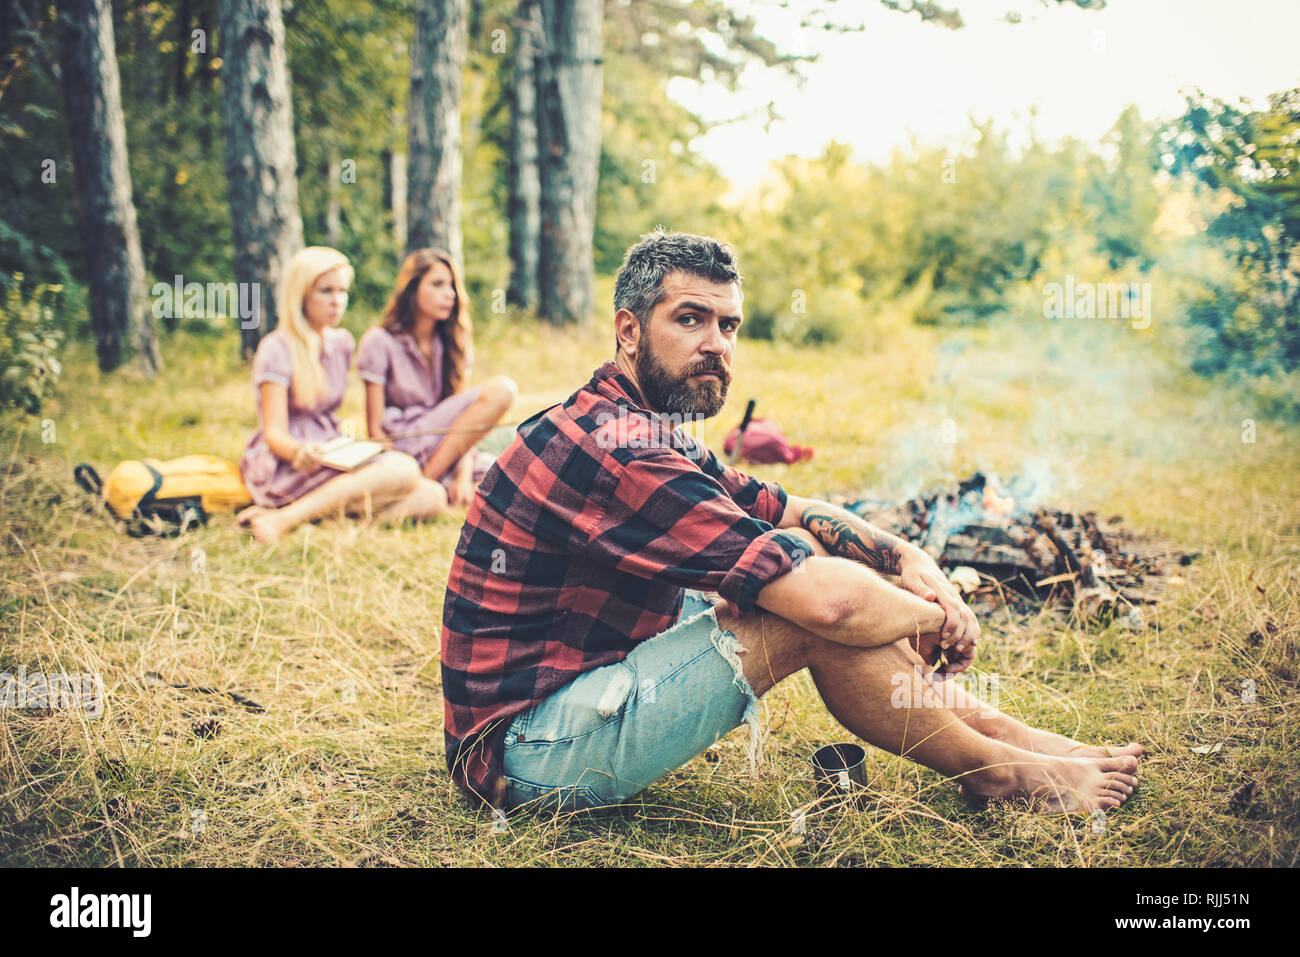 Bearded man relax at bonfire with women on blurred background. Hipster with beard sit at campfire. Friends enjoy camping in forest. Summer vacation - Stock Image